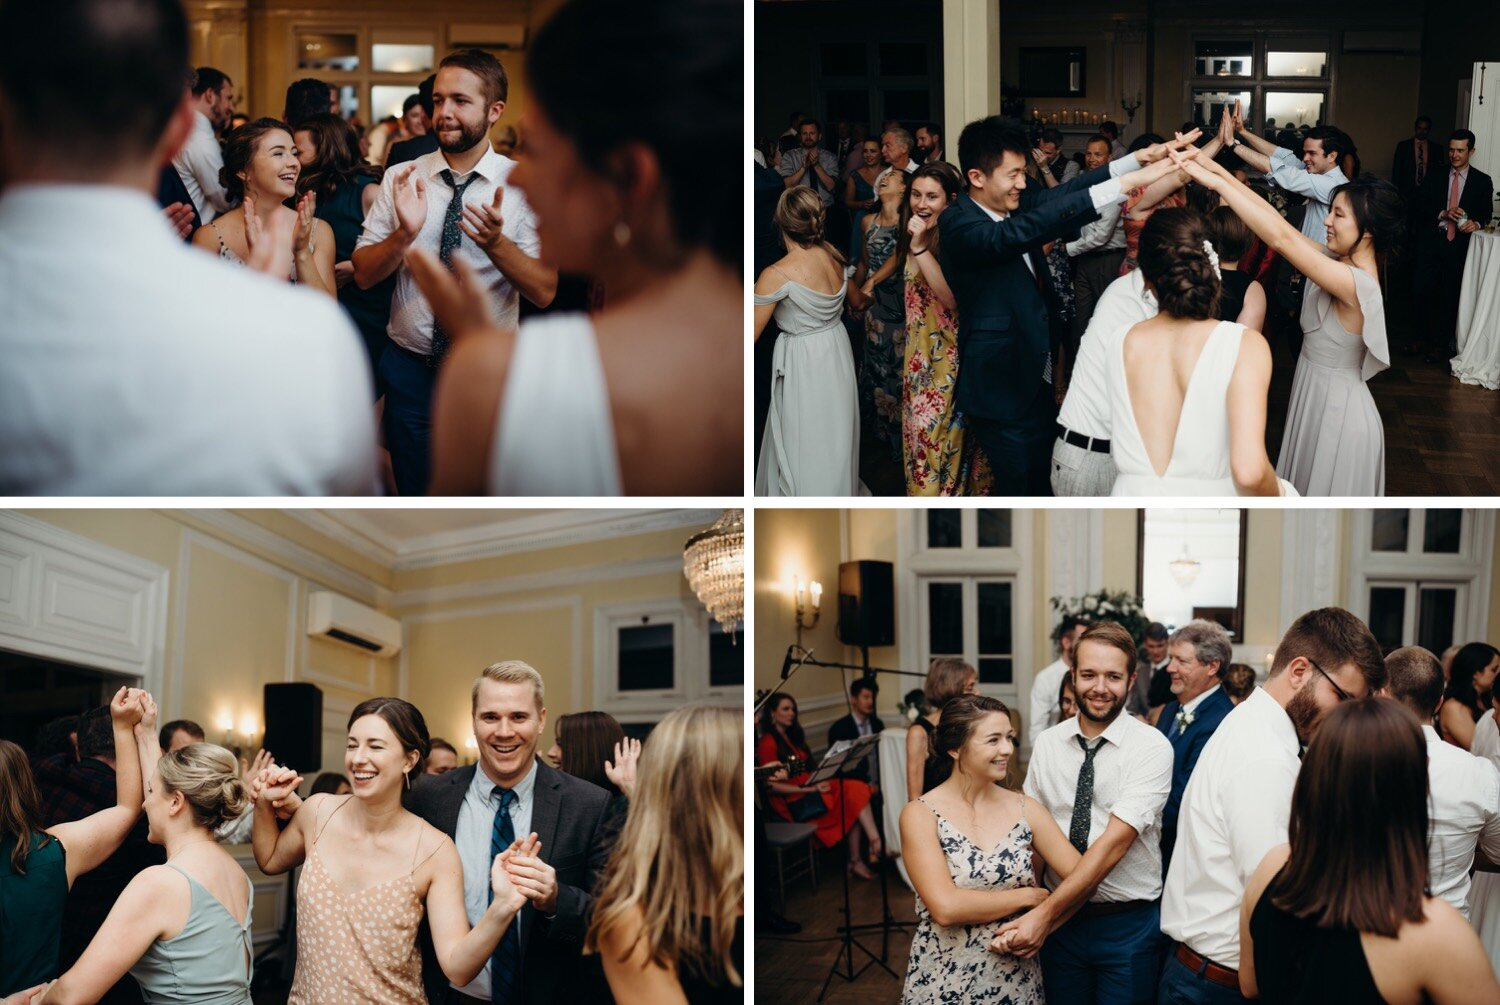 65_josephine_butler_photographer_center_dc_parks_washington_wedding.jpg